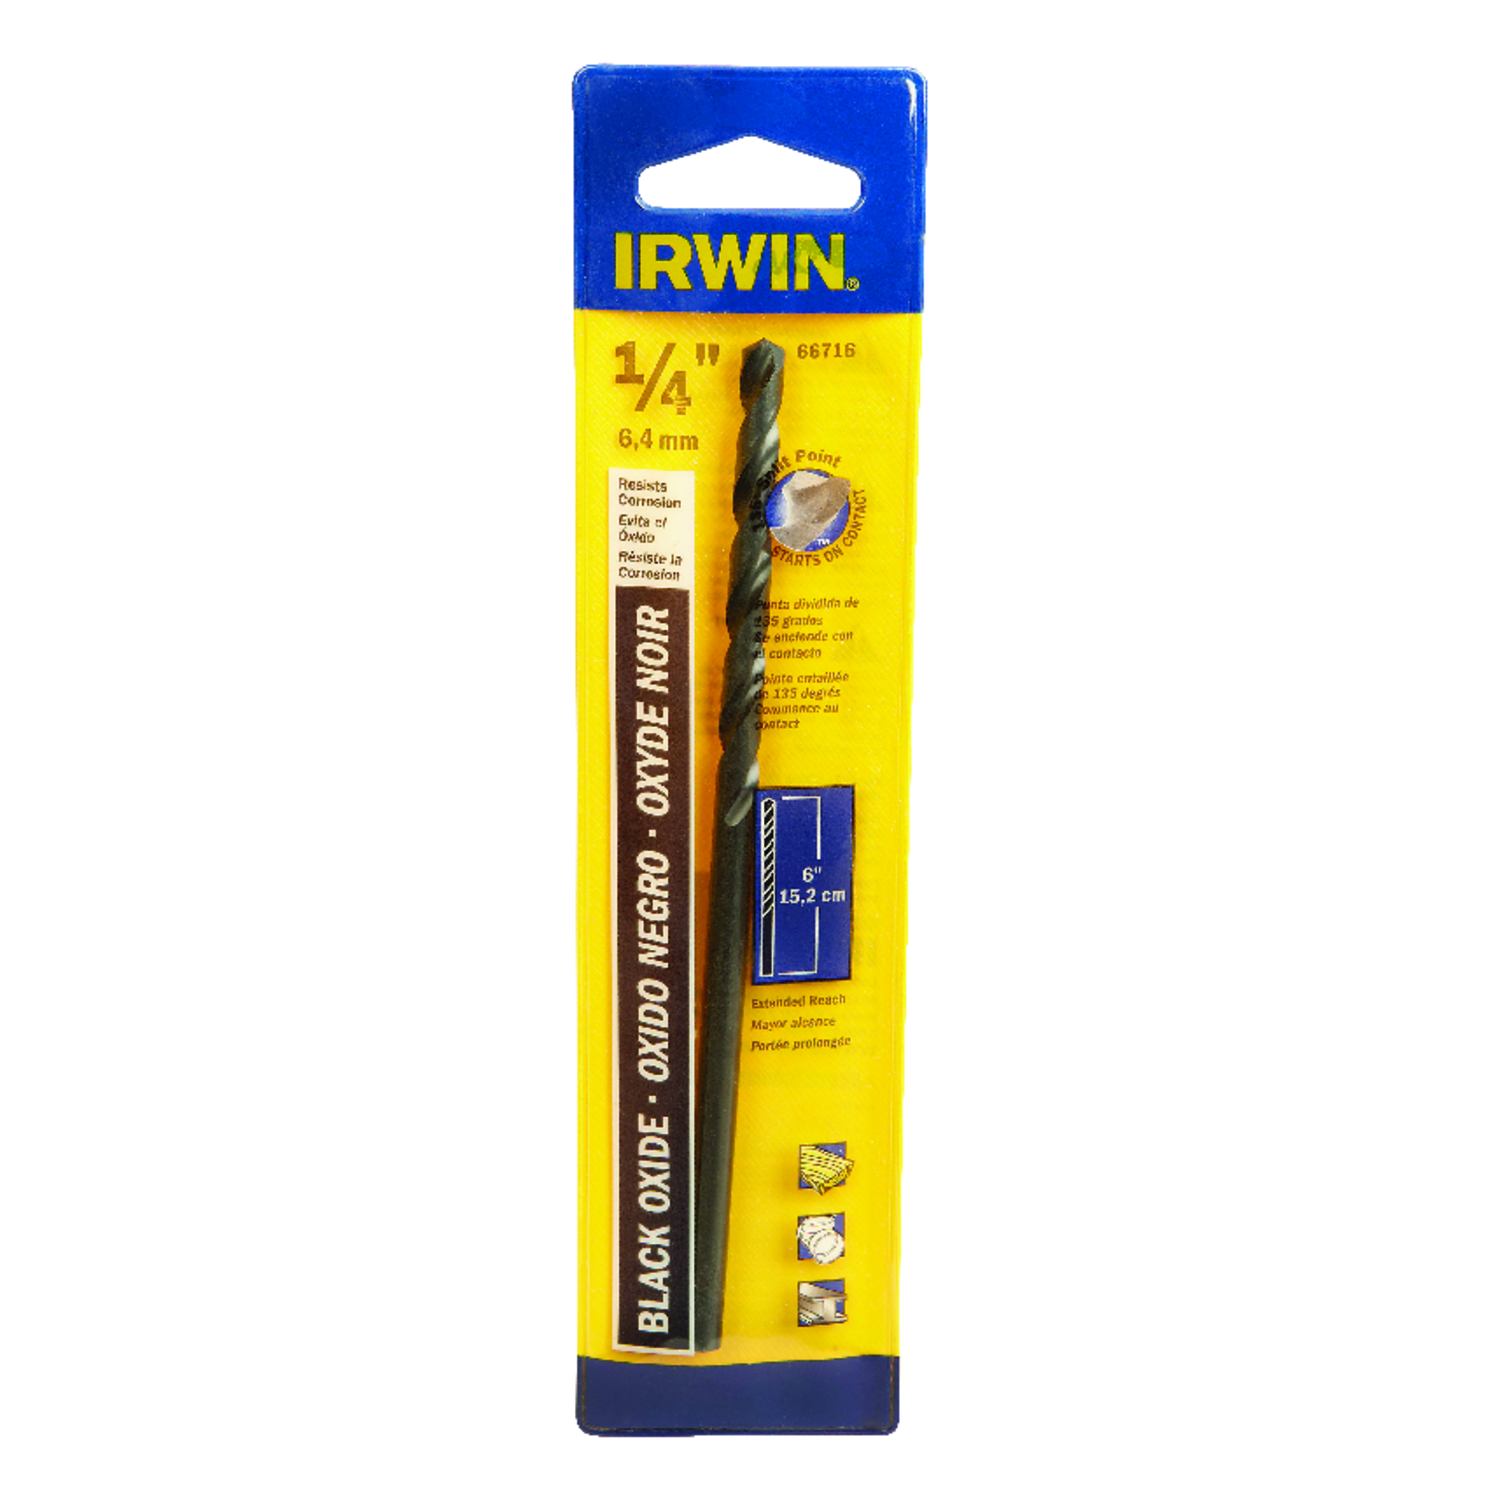 Irwin  1/4 in. Dia. x 6 in. L High Speed Steel  Split Point Drill Bit  Straight Shank  1 pc.